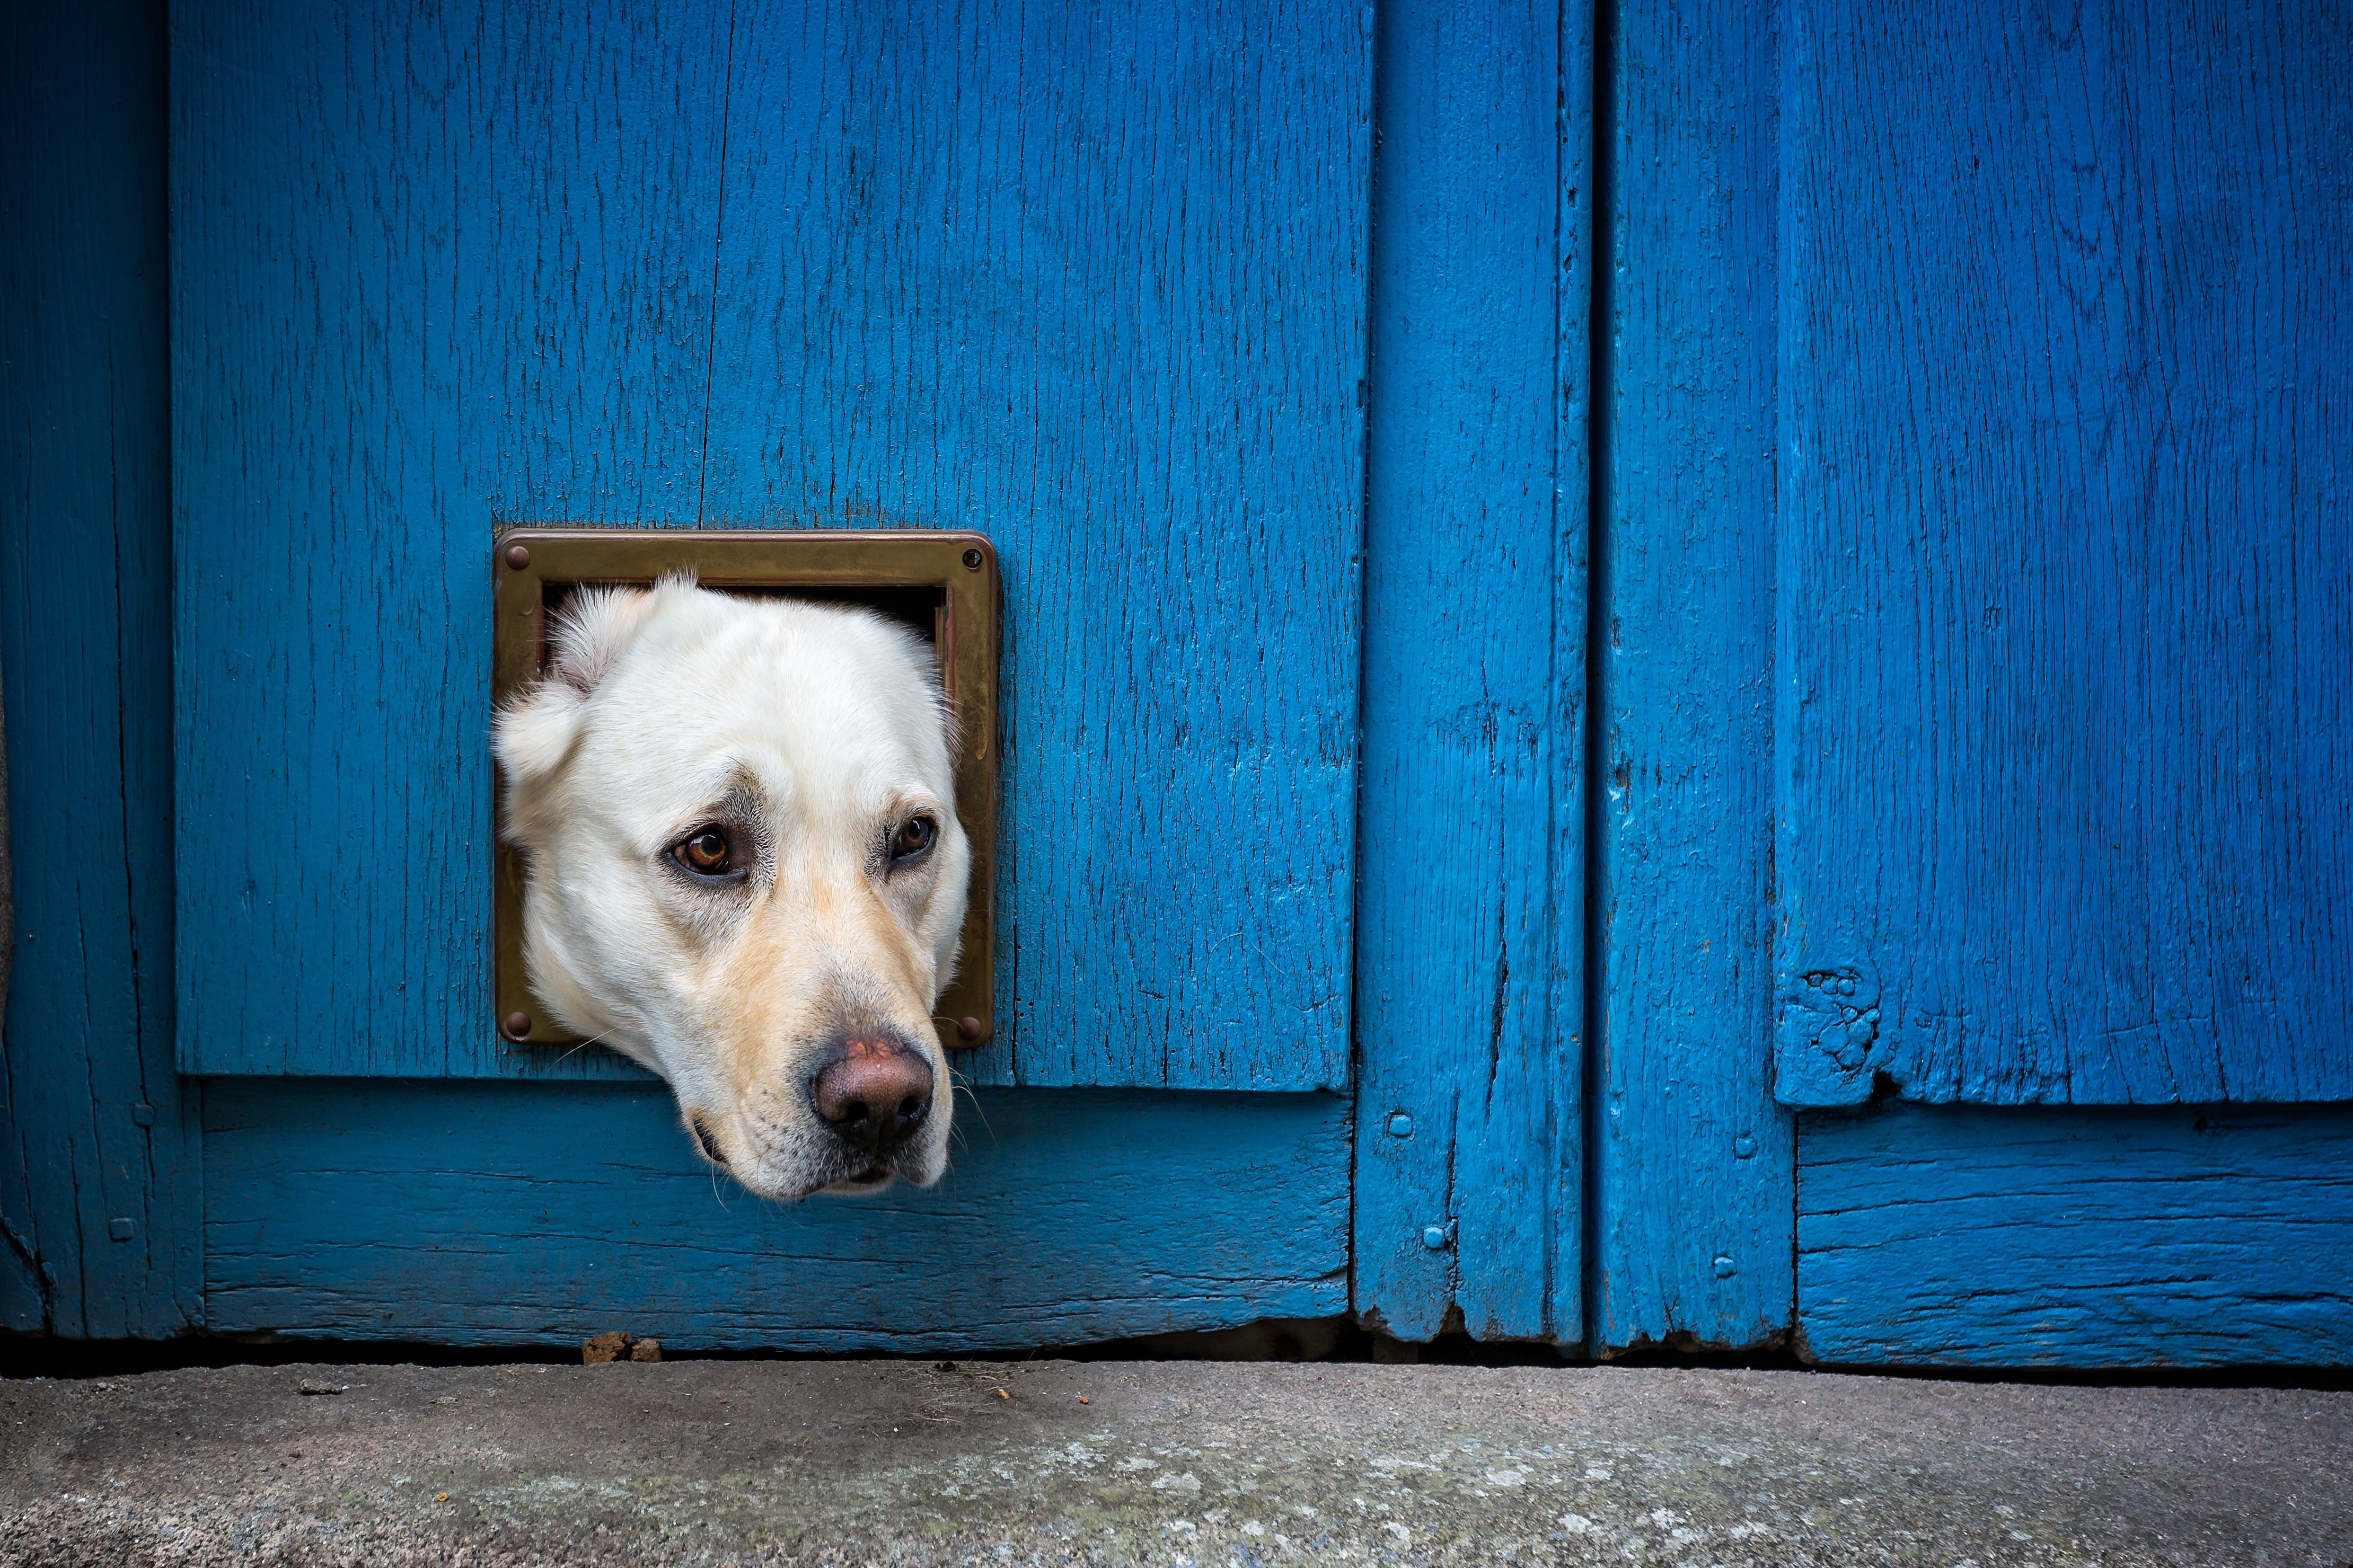 The head of a Labrador sticks out through a doggy door   Photo: Shutterstock/Nigel Jarvis